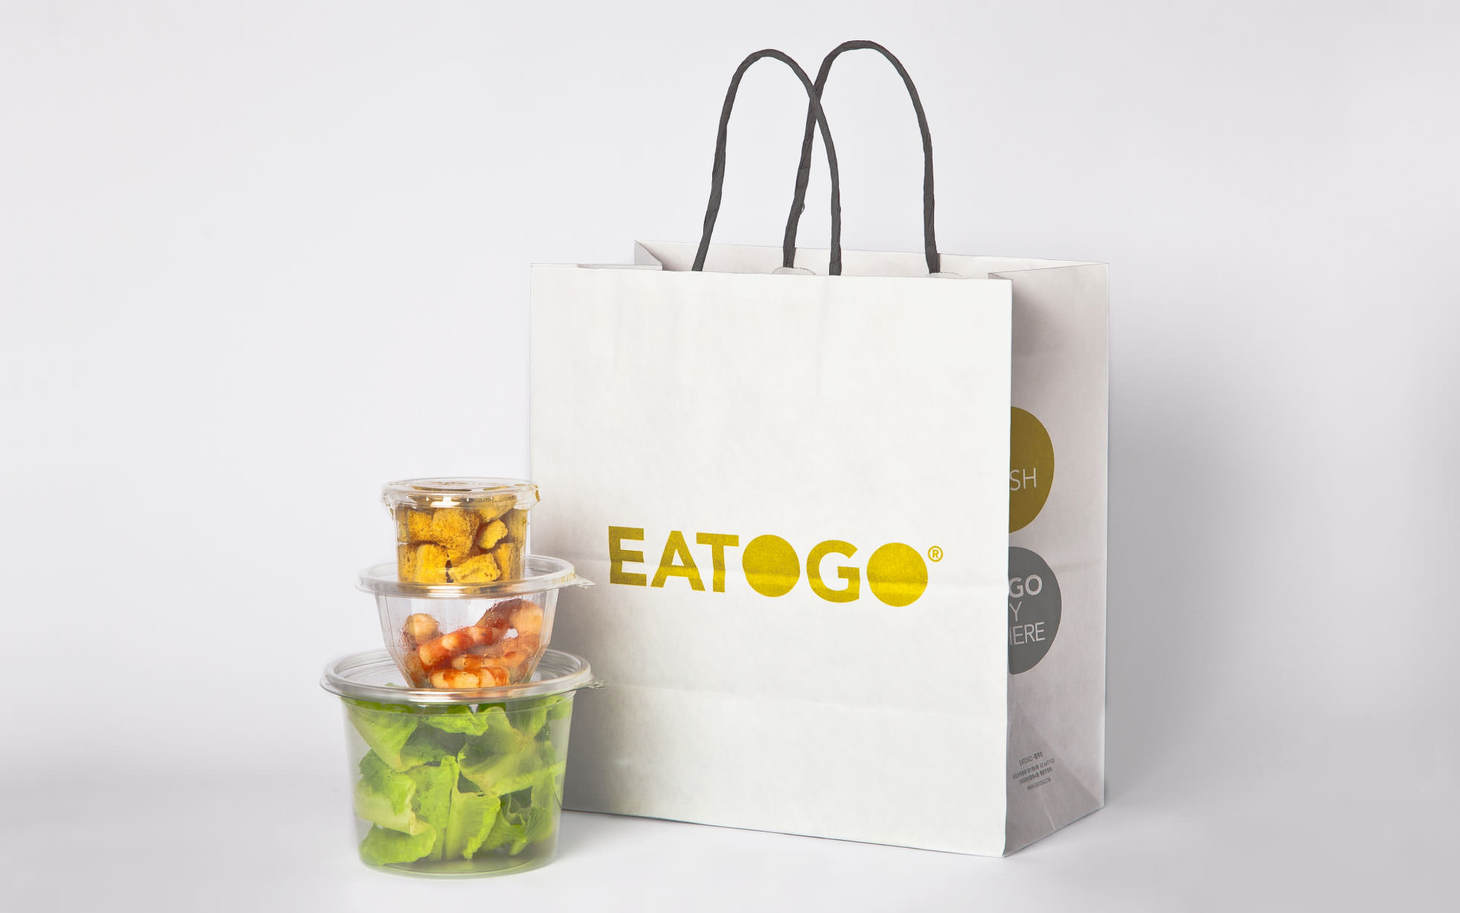 ETG_packaging_20150225_2.jpg